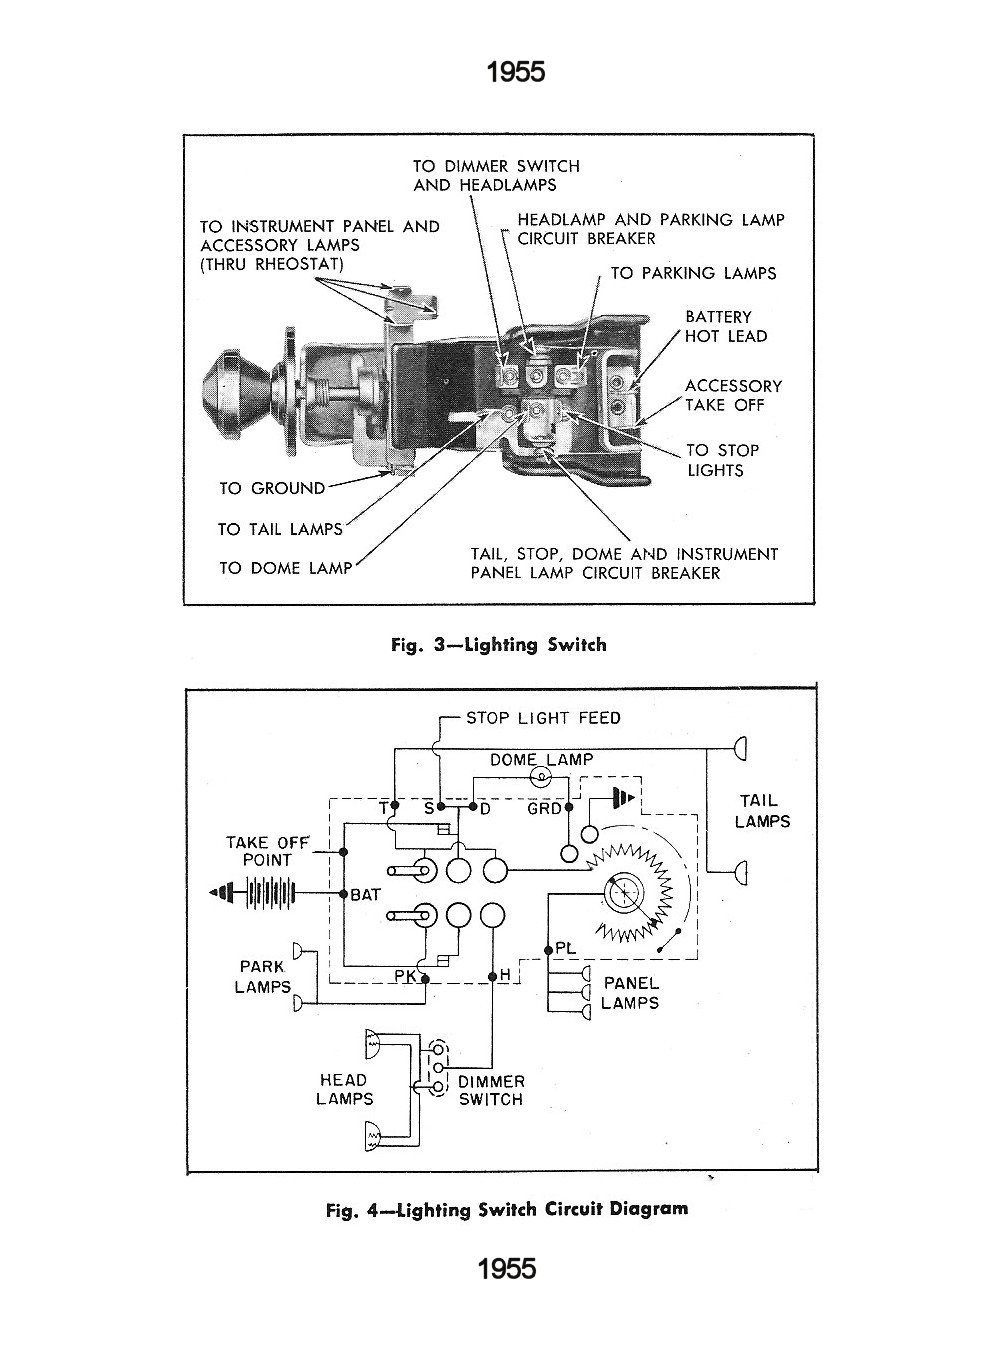 Tremendous 1984 Chevy C10 Fuse Box Diagram Basic Electronics Wiring Diagram Wiring 101 Orsalhahutechinfo